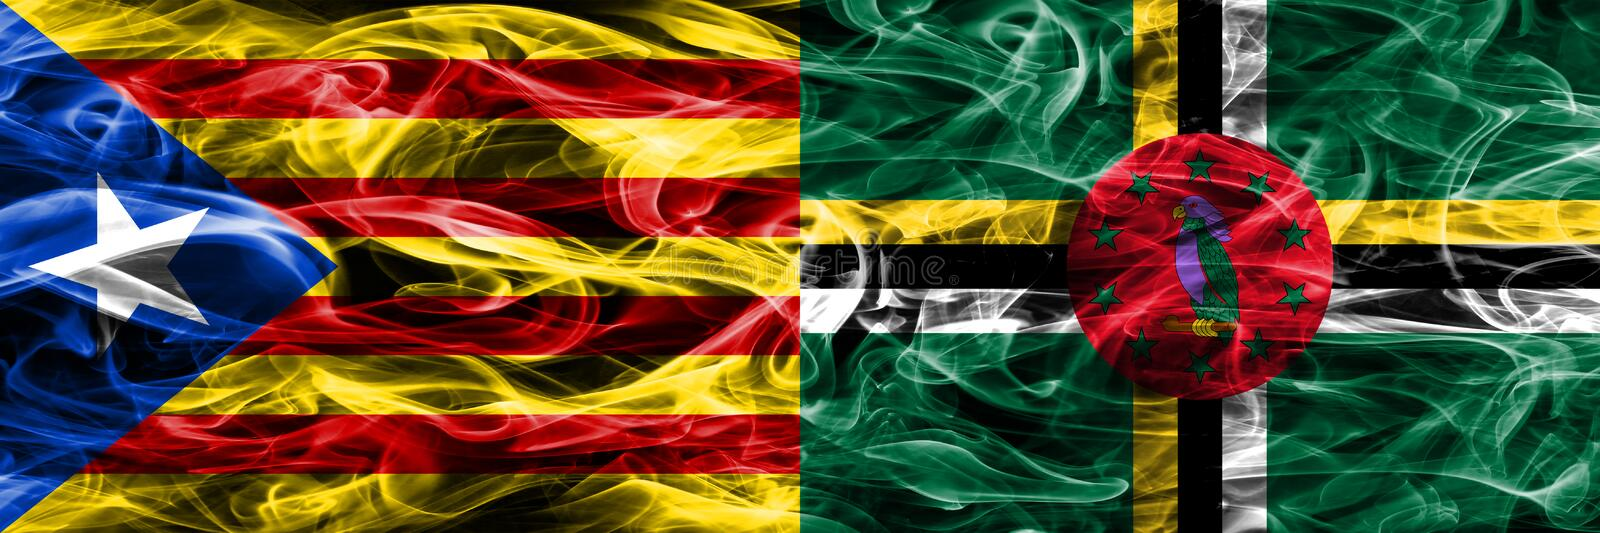 Catalonia vs Dominica copy smoke flags placed side by side. Thick colored silky smoke flags of Catalan and Dominica copy.  royalty free illustration